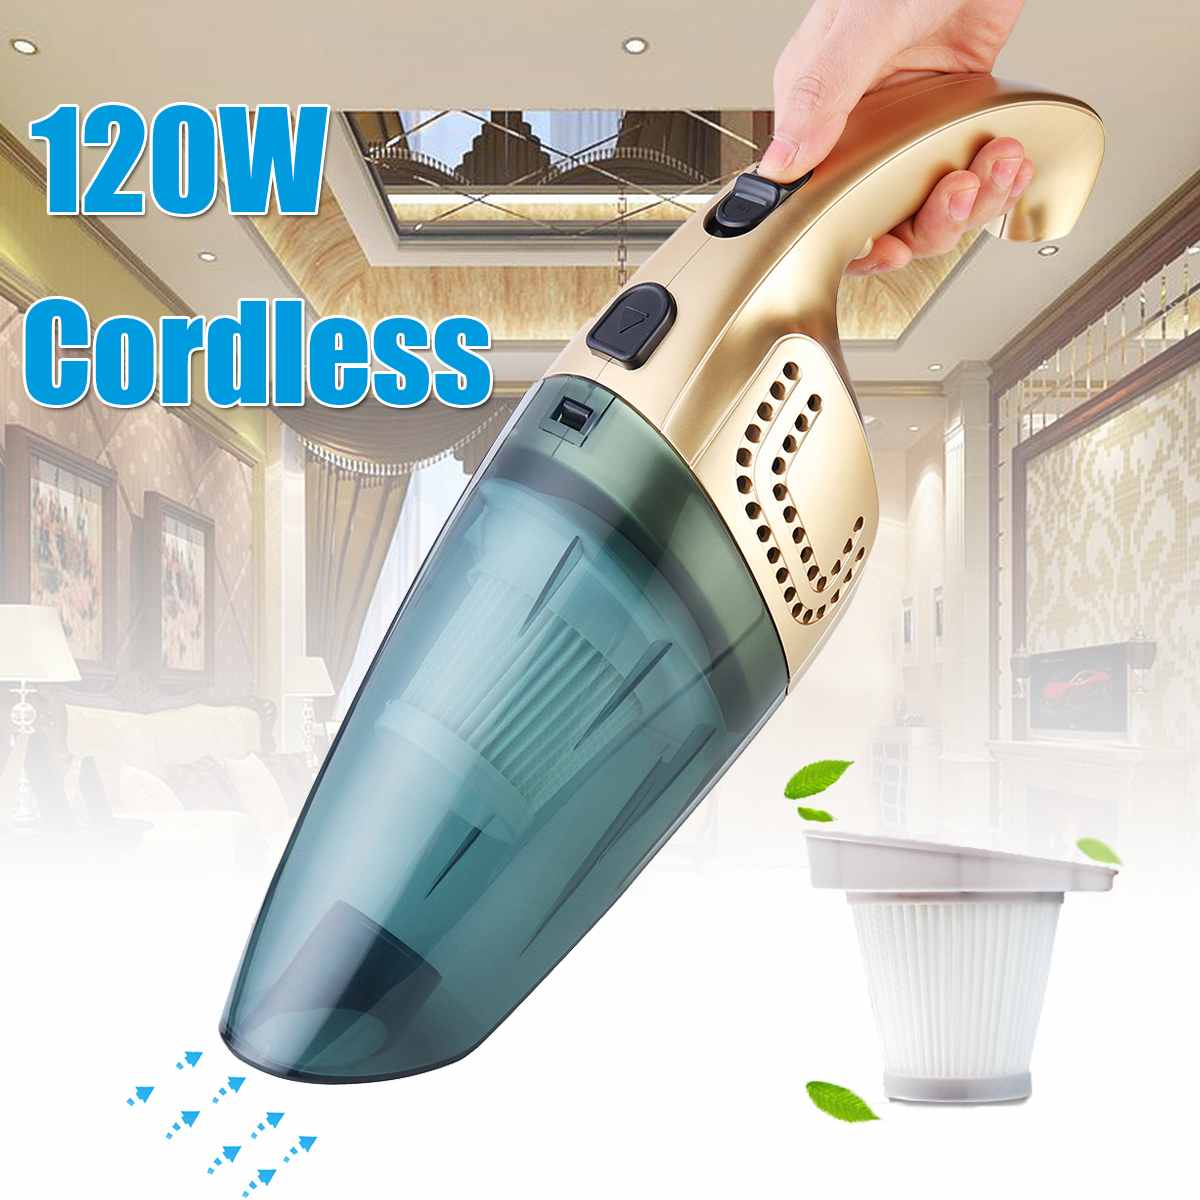 120W Portable Home Car Cordless Vacuum Cleaner Rechargeable Dust Collector Sweeper Dual Use Dry/Wet 220V 2600mAh Vacuum Sweeper120W Portable Home Car Cordless Vacuum Cleaner Rechargeable Dust Collector Sweeper Dual Use Dry/Wet 220V 2600mAh Vacuum Sweeper